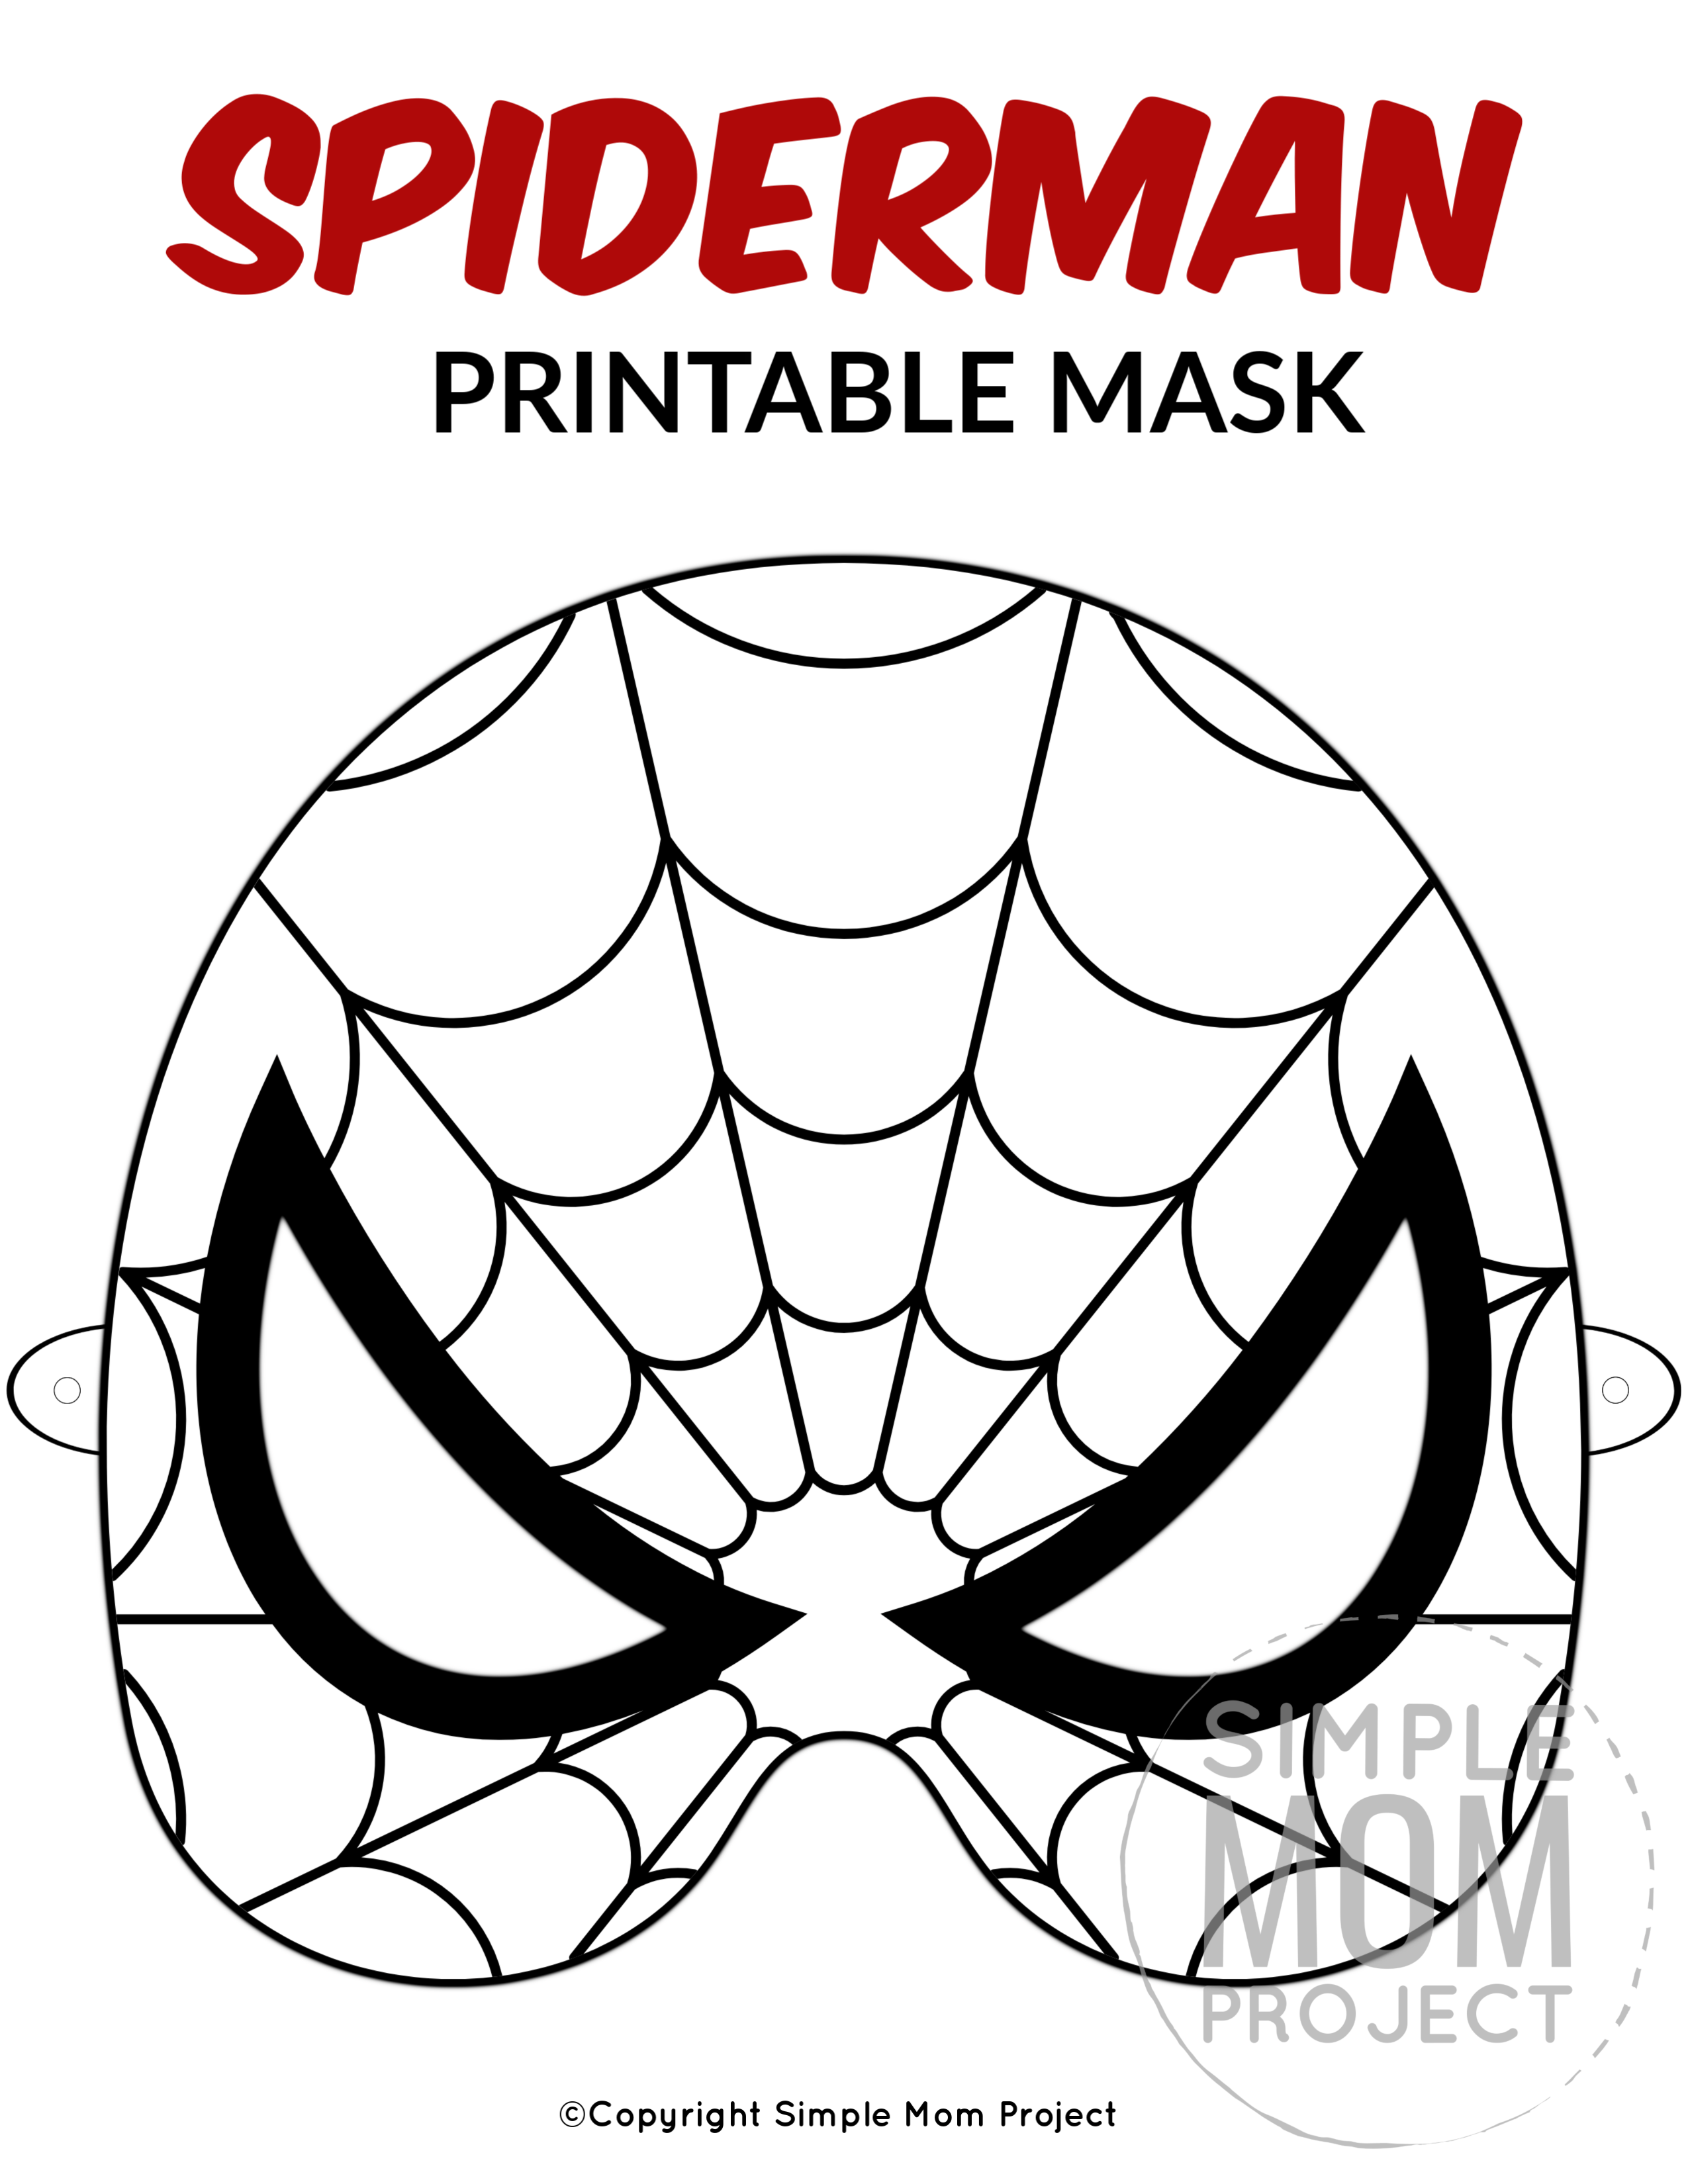 Free Printable Spider-Man Mask Templates - Simple Mom Project in